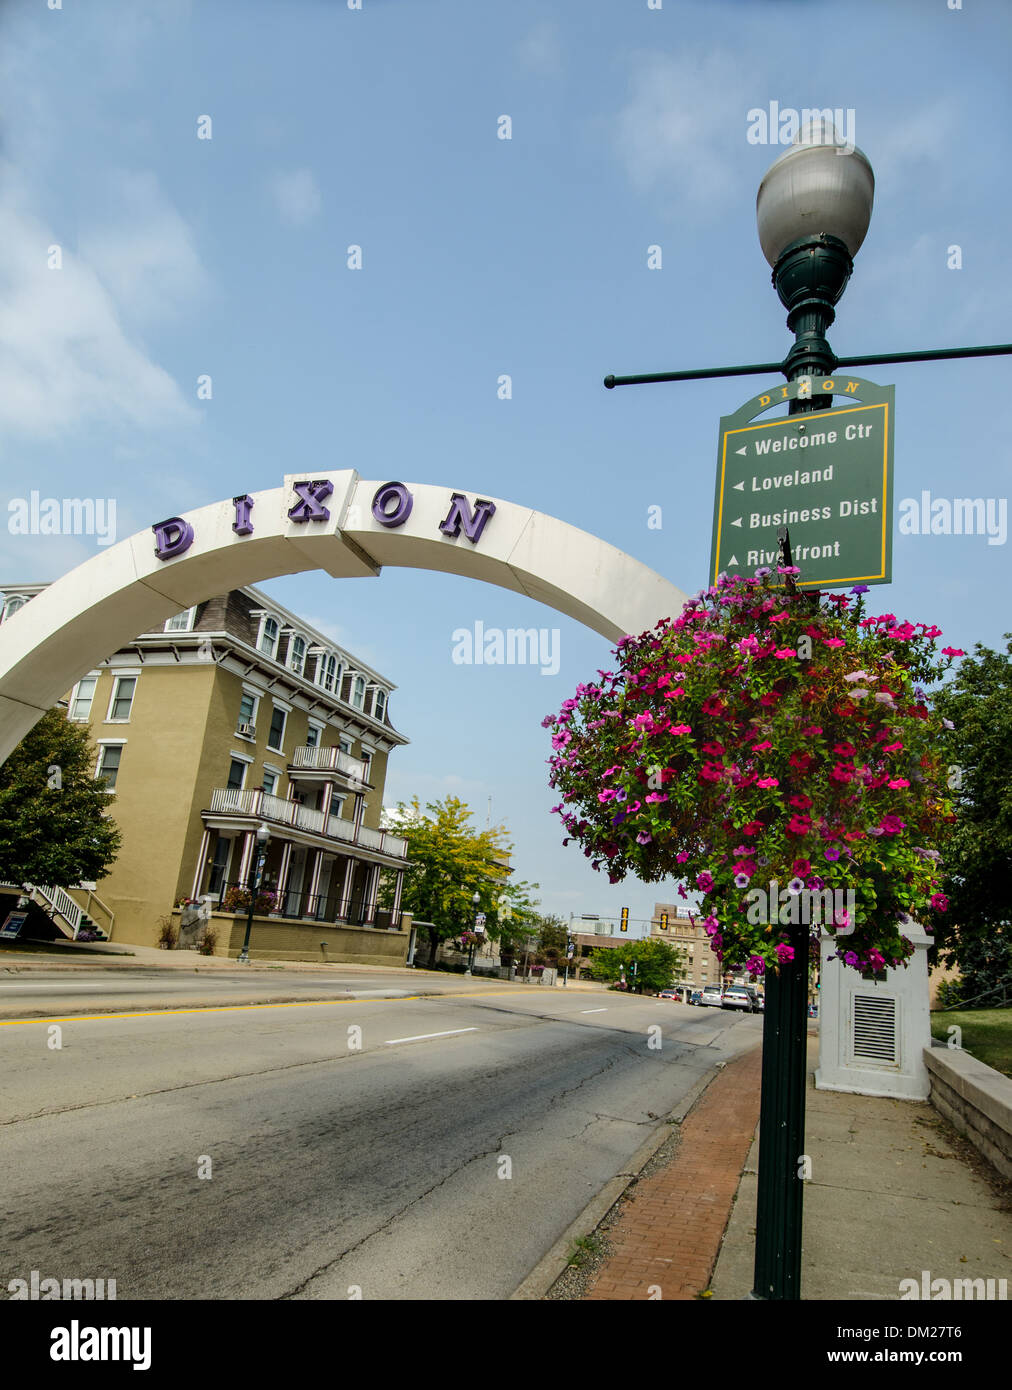 Arch in Dixon , Illinois, a city along the Lincoln Highway. - Stock Image